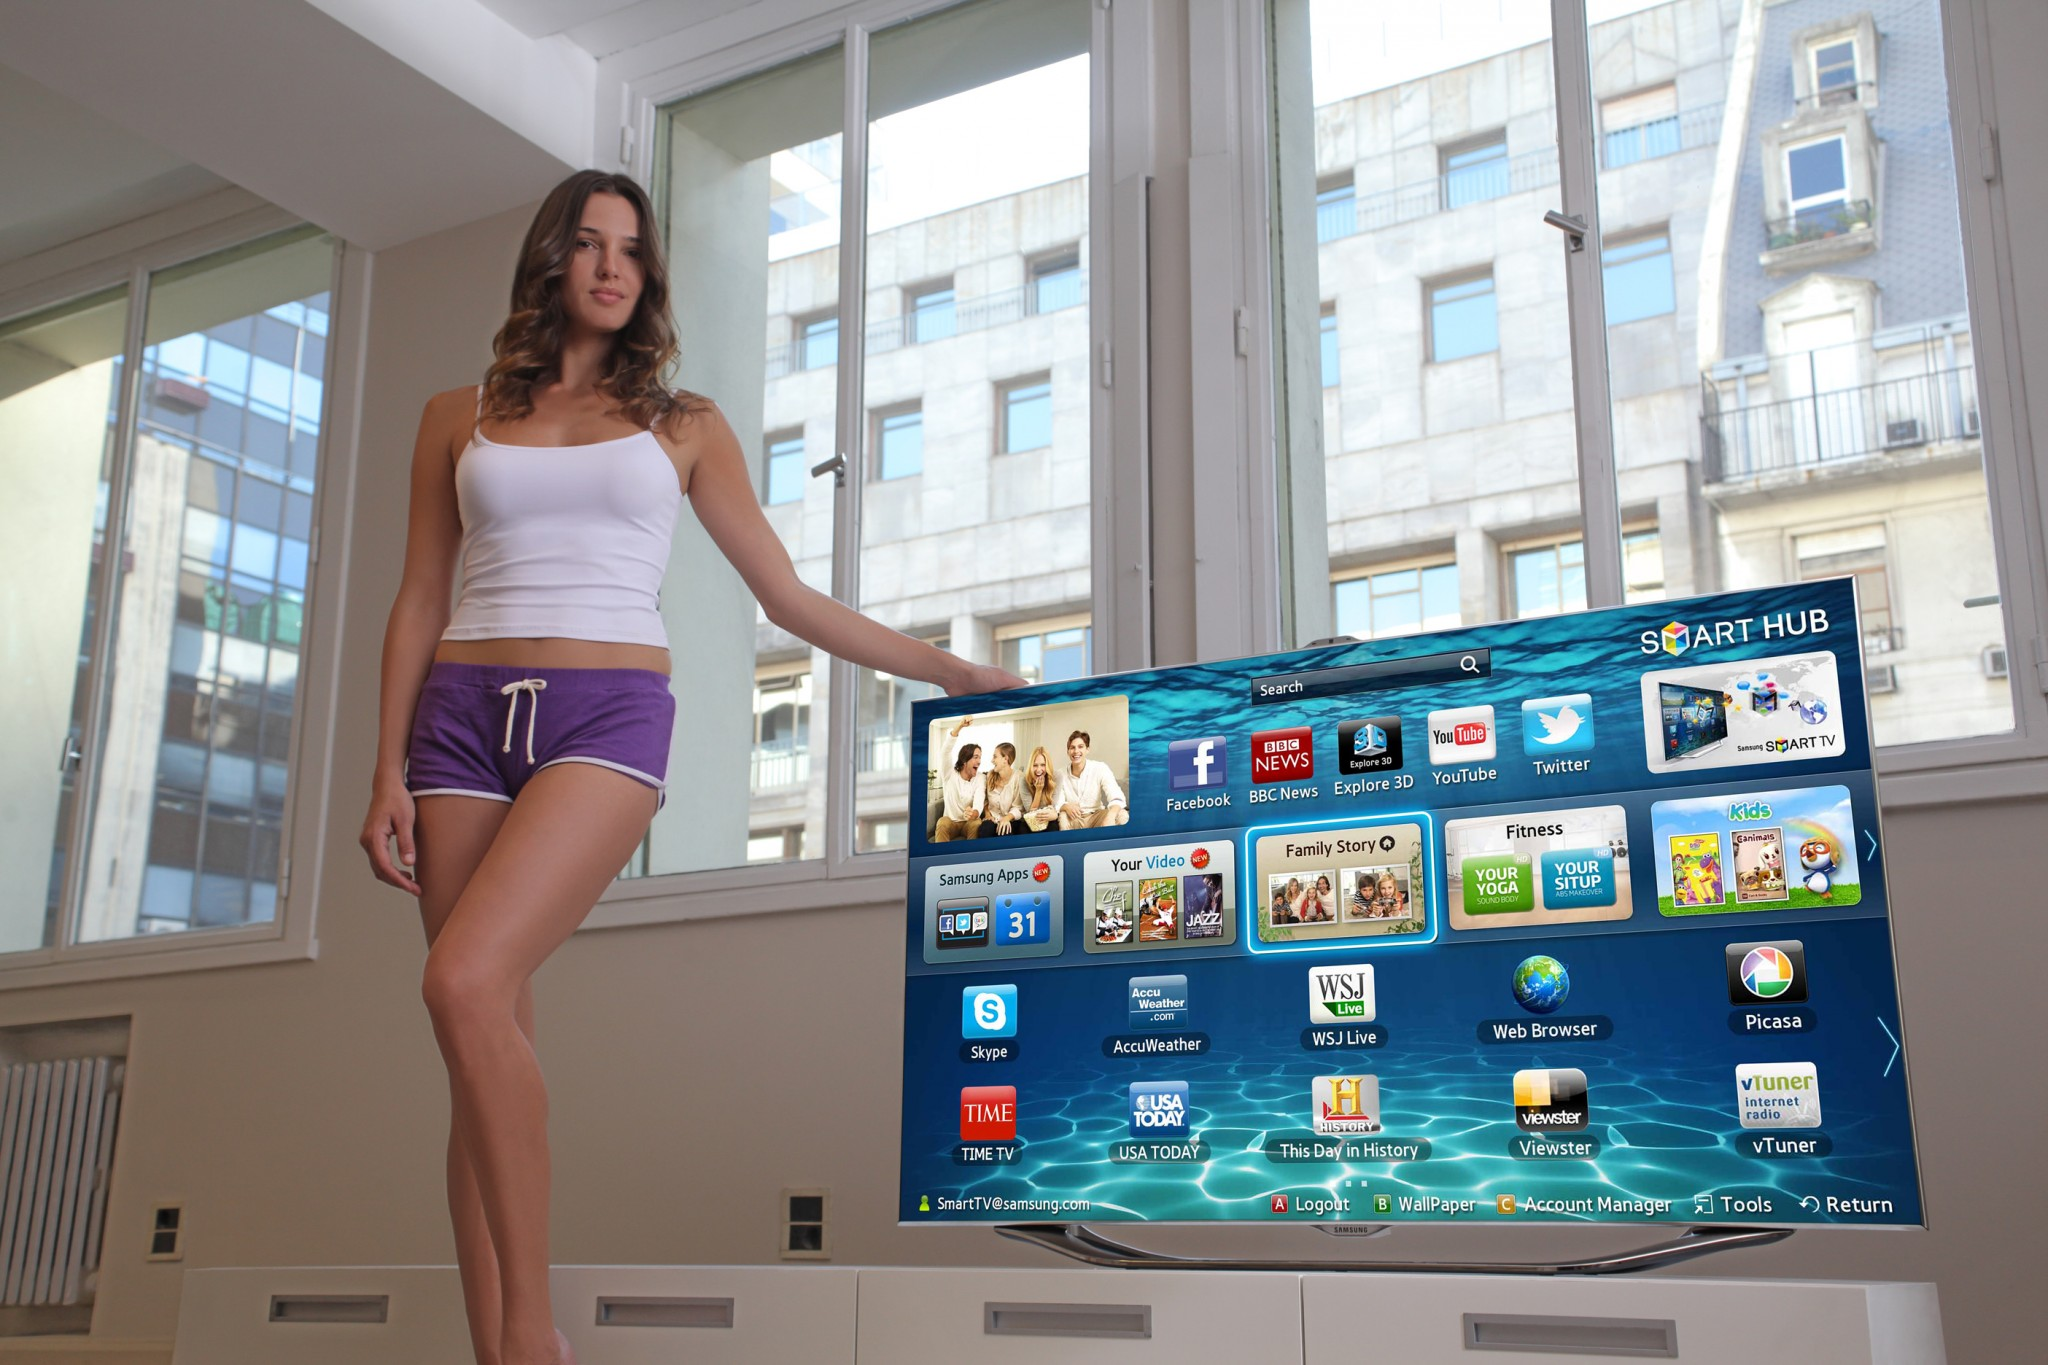 Samsung Smart TV Voice Commands